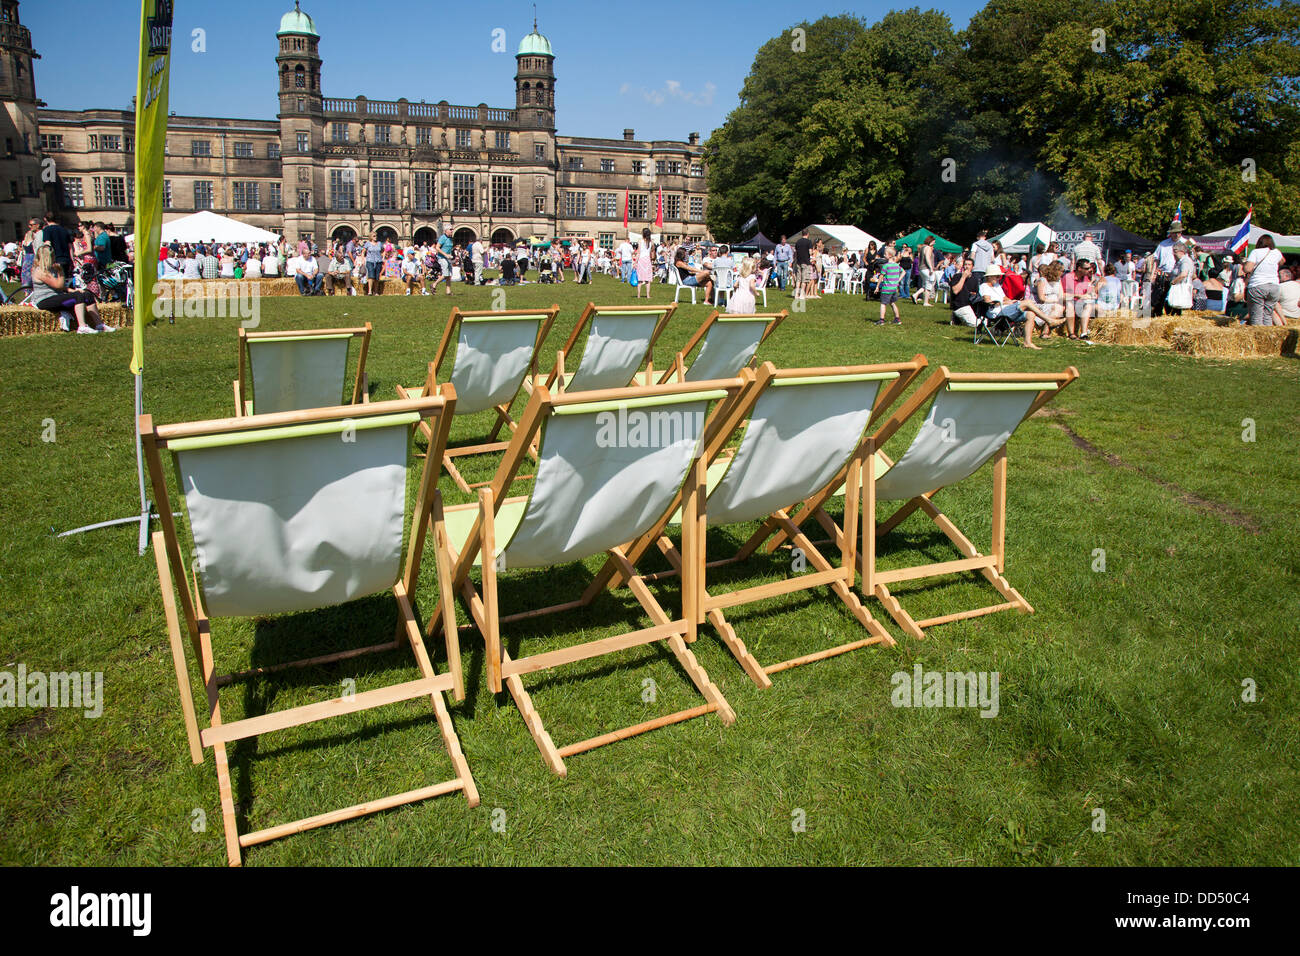 Stonyhurst College, Clitheroe, UK. 26th August, 2013. Deckchairs and seating at the Great British Food Festival - Stock Image